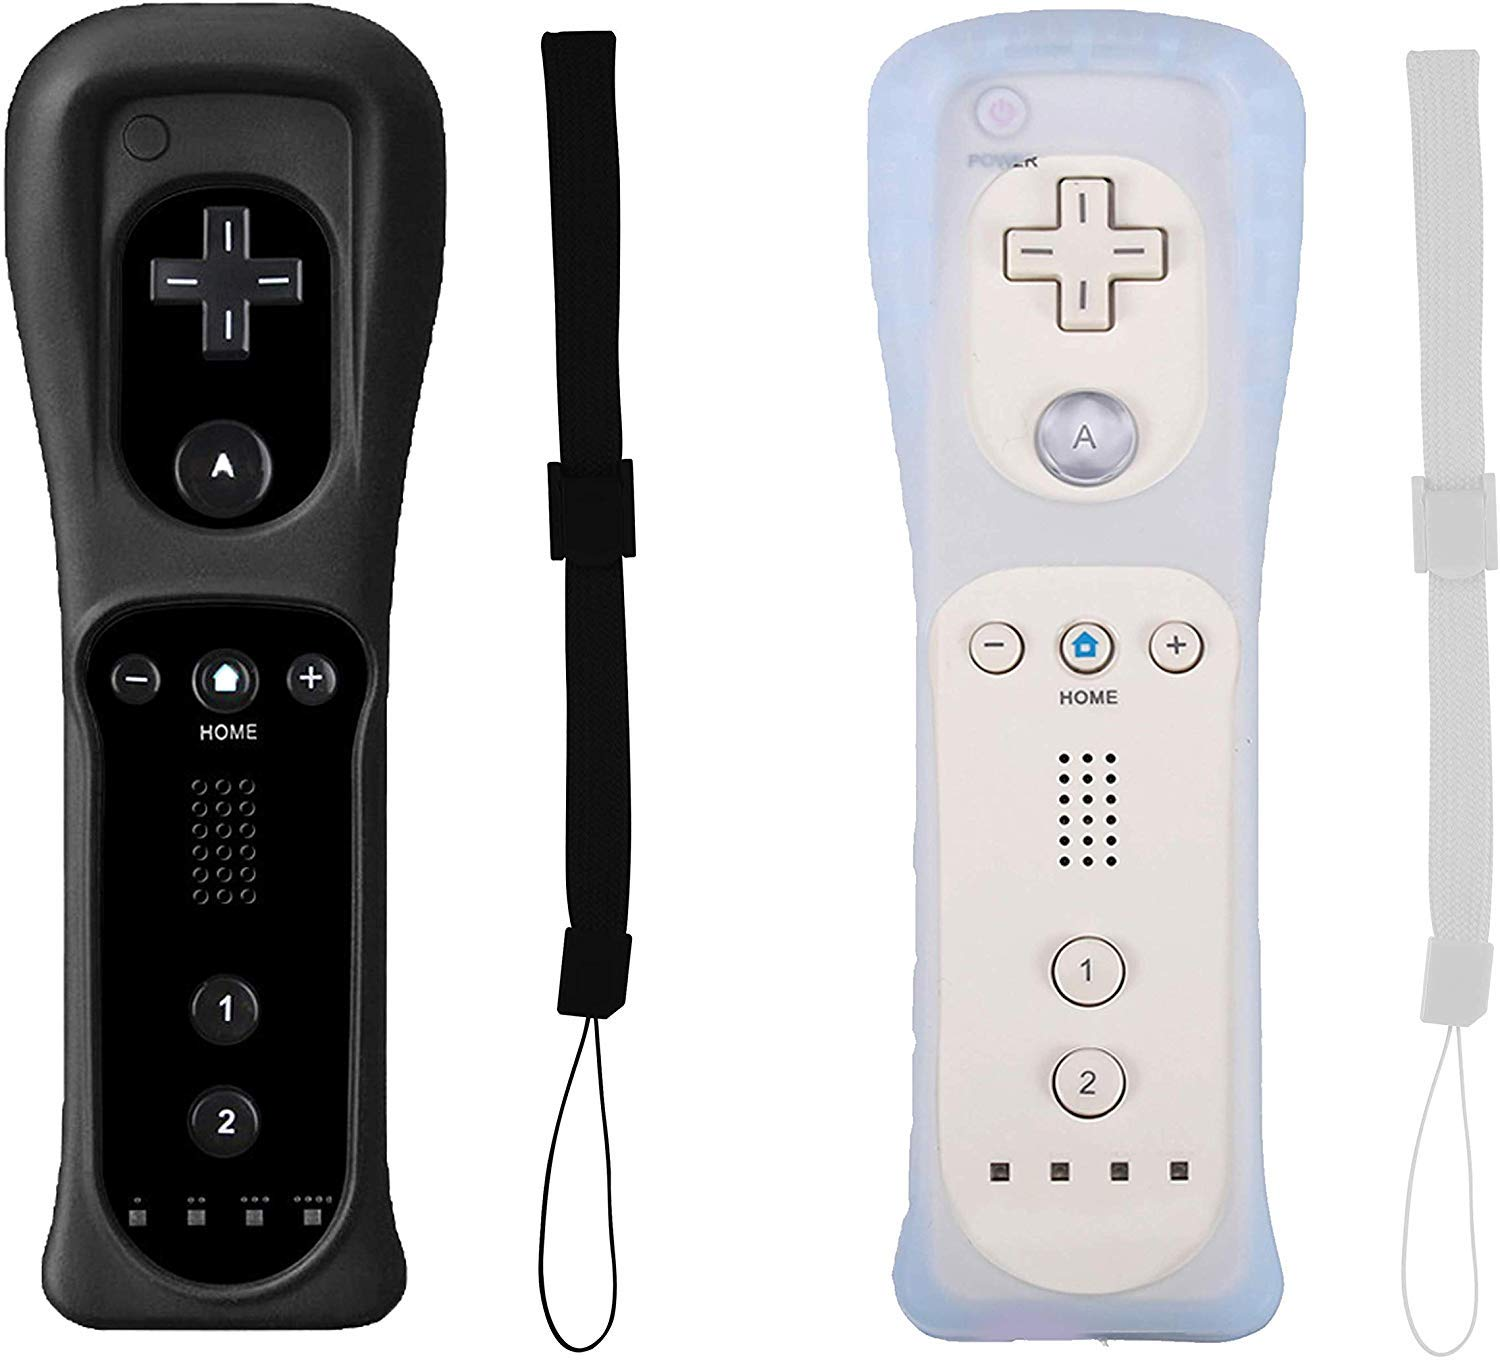 Top Souls Remote Game Controlle come with Silicone Case and Wrist Strap for Nintendo Wii and Wii U - 2Pack - White and Black